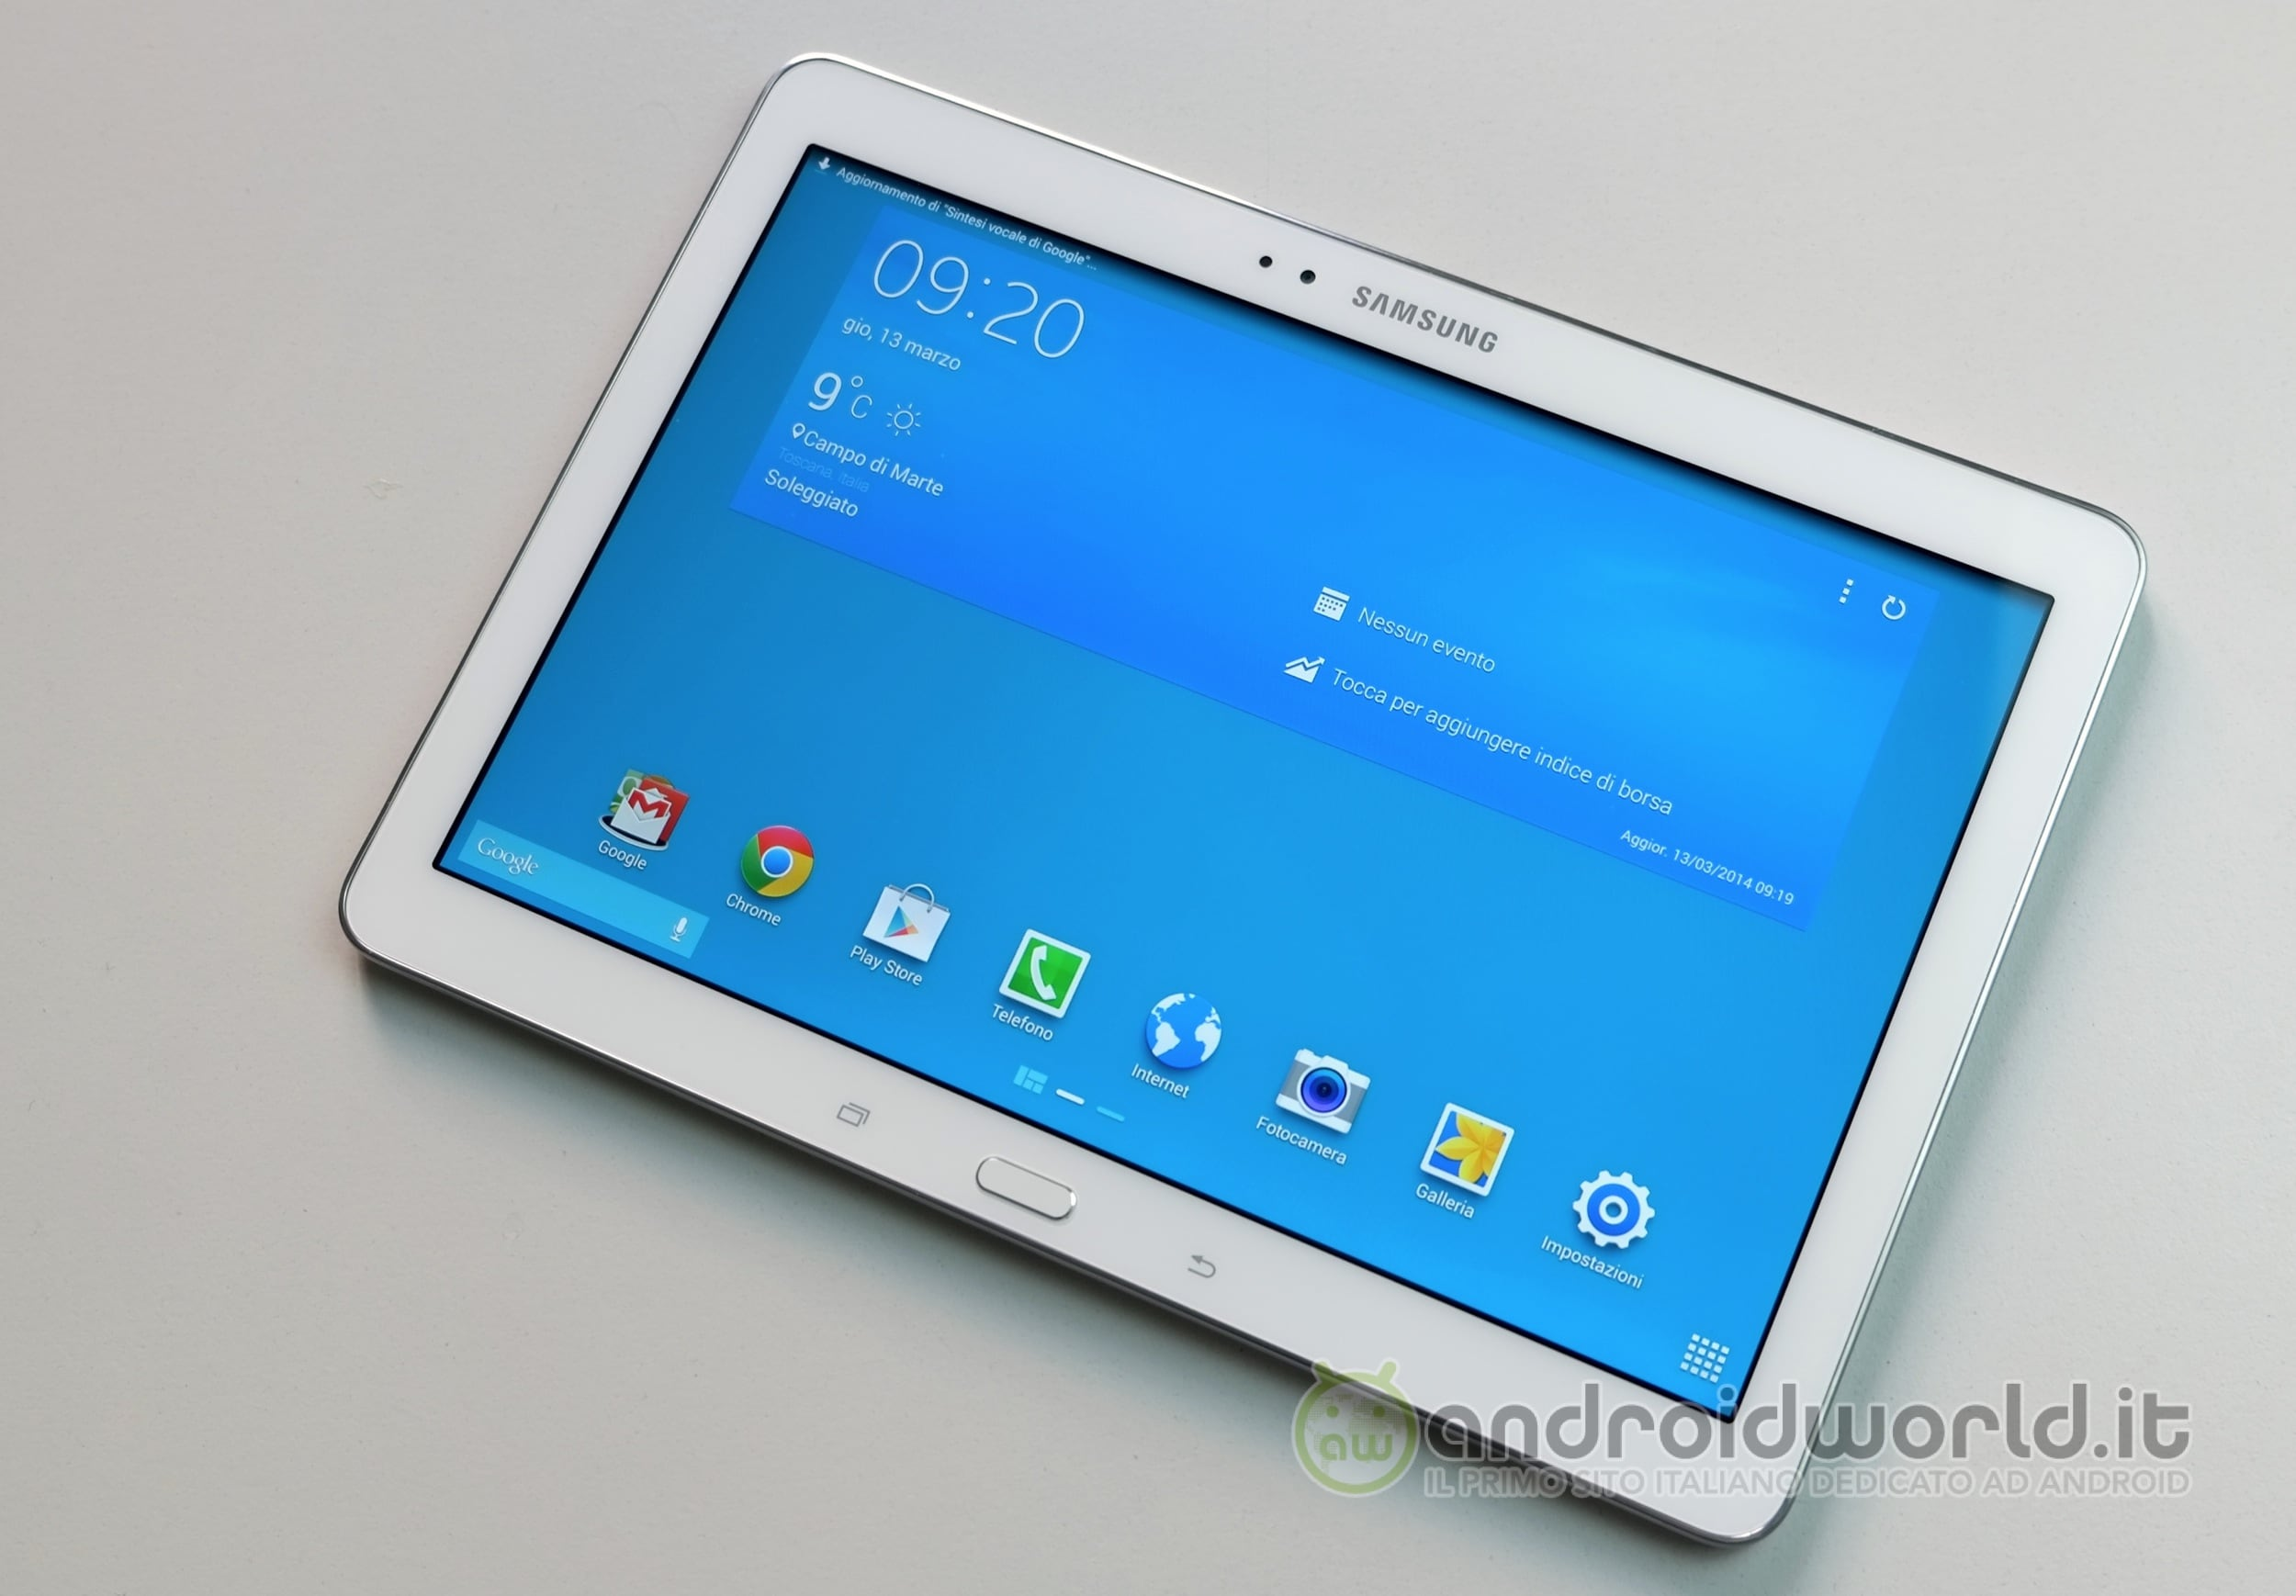 Samsung Galaxy Tab PRO 10.1, la recensione (foto e video) | Foto 1 di 5